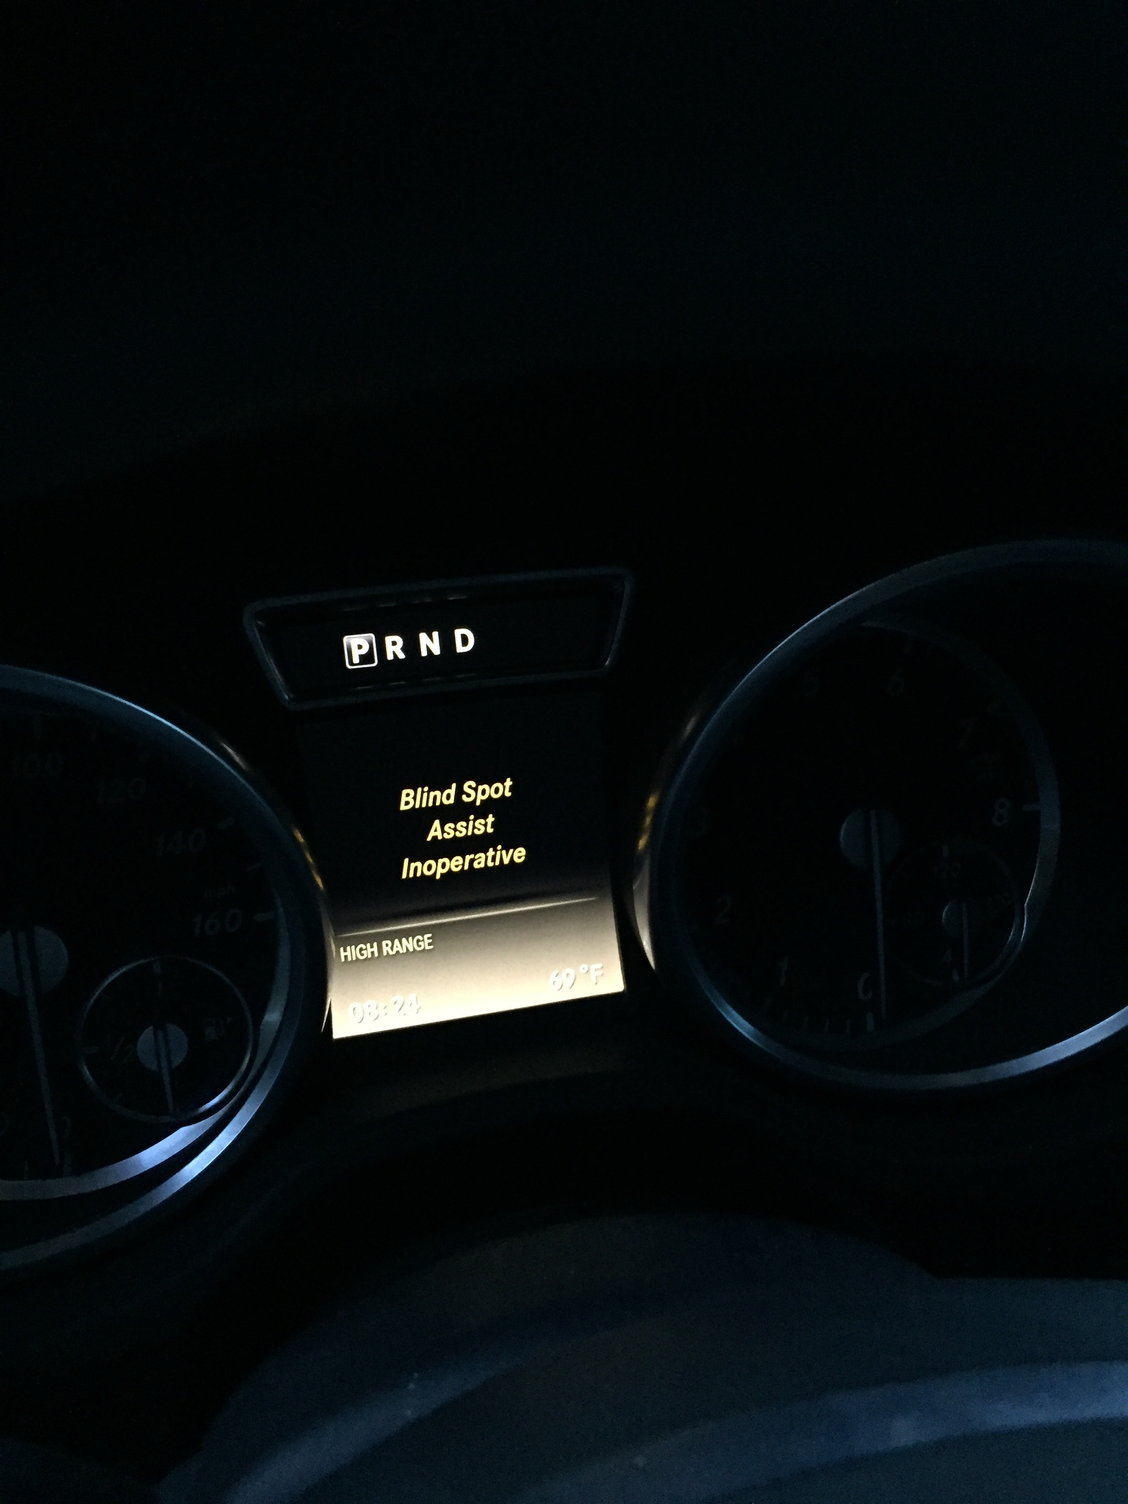 G550 what does it mean blind spot assist inoperative - MBWorld org